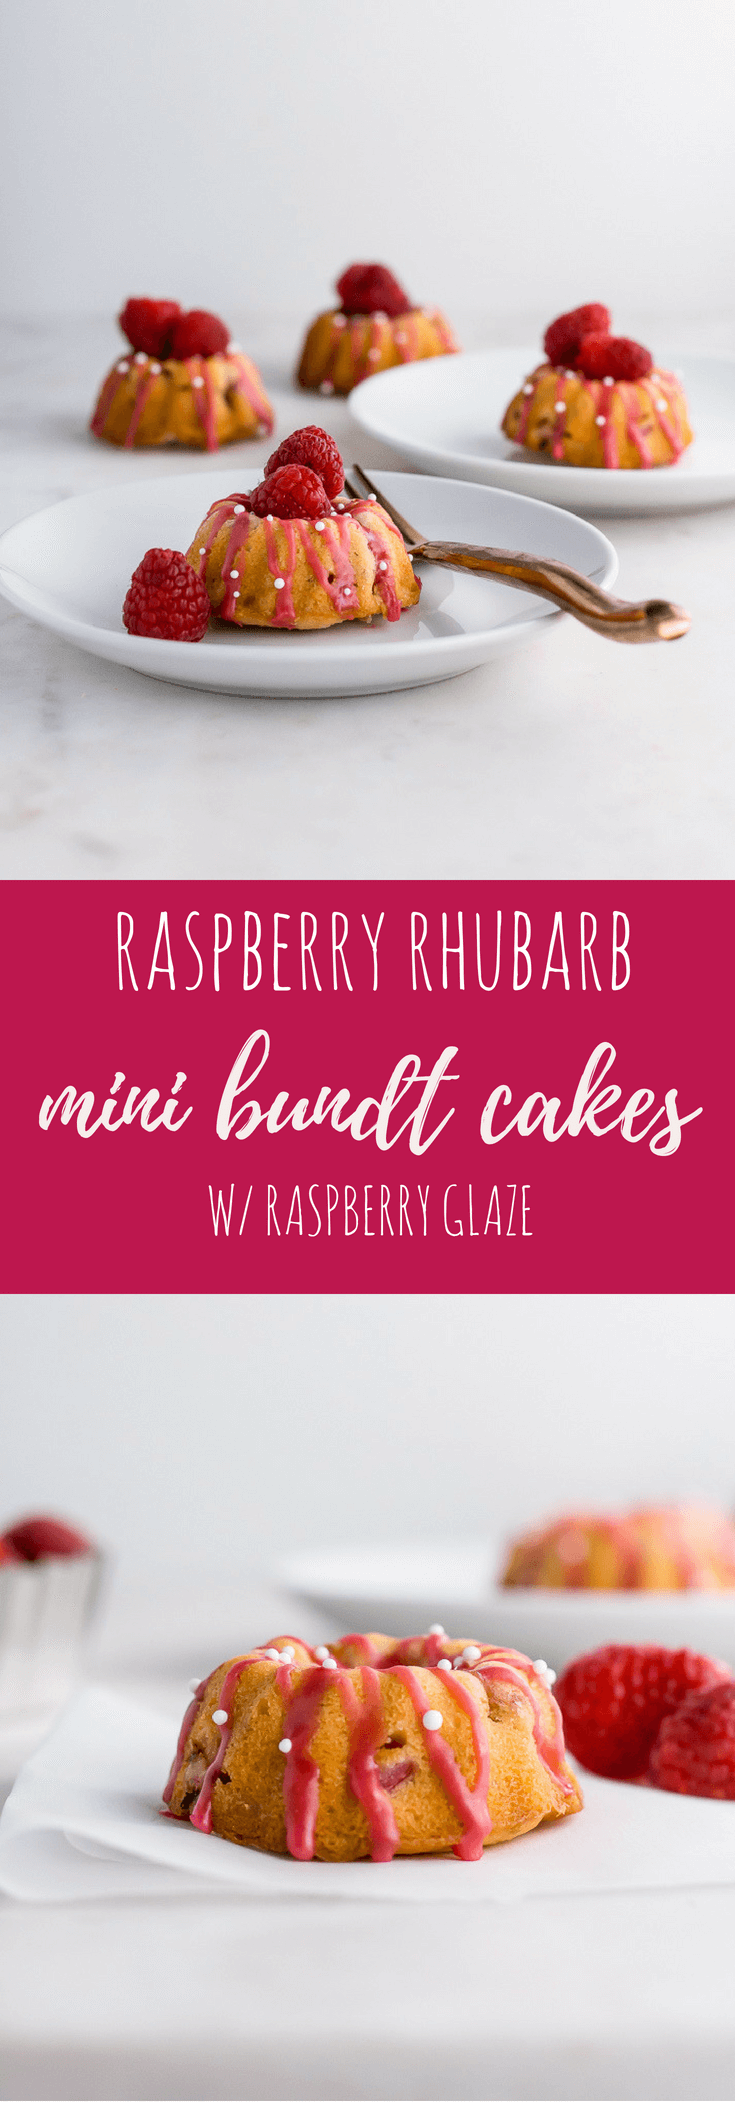 Raspberry Rhubarb Mini Bundt Cakes | Flour Covered Apron #brunch #bundt #cakes #raspberry #rhubarb #summer